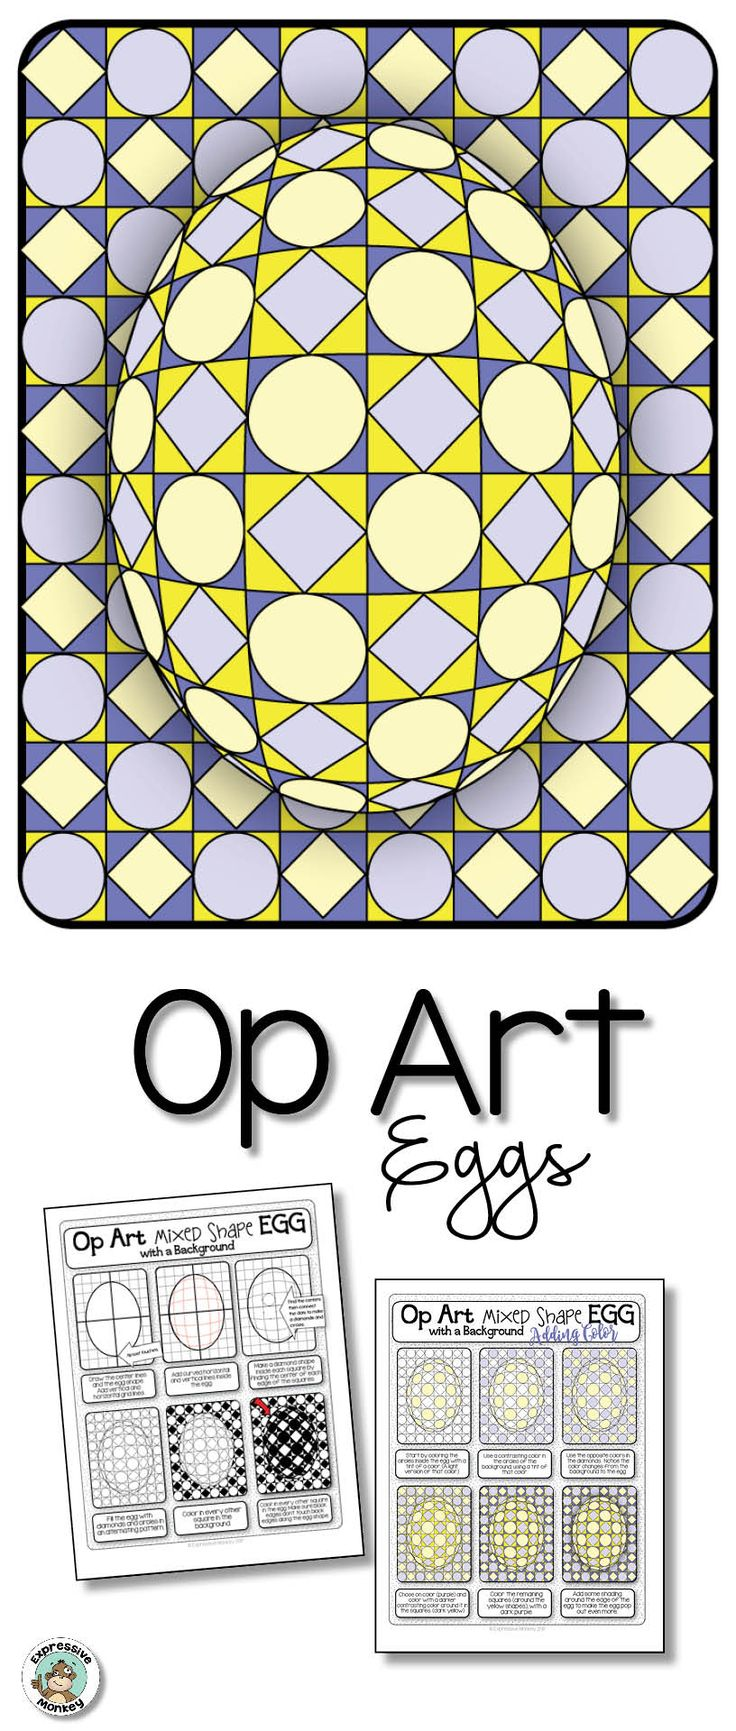 Don't let the pretty eggs fool you!  This lesson is rich in art concepts and cross-curricular connections! !